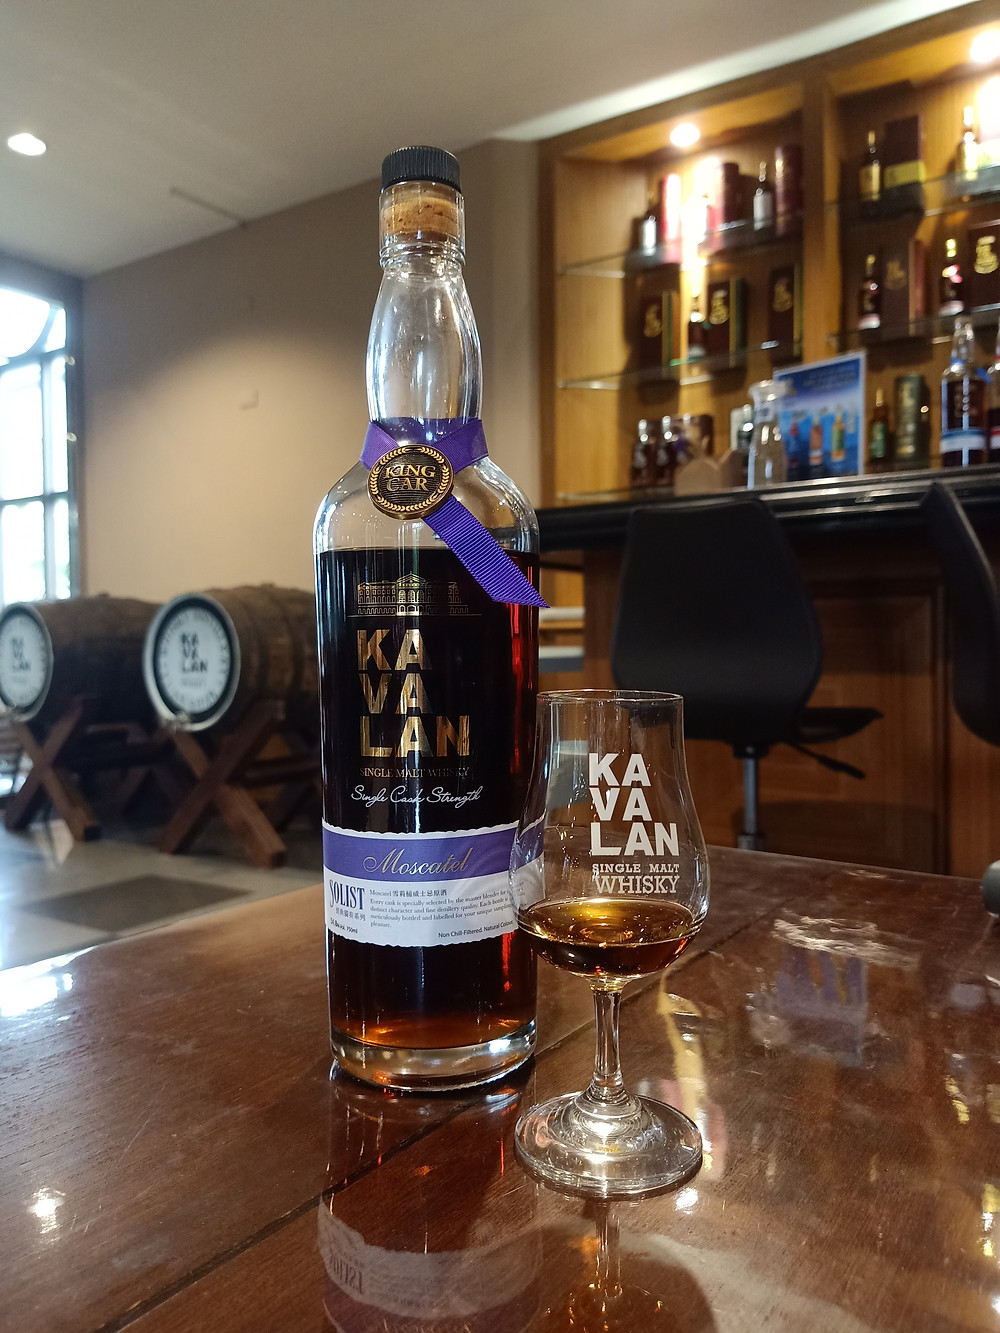 Kavalan Moscatel Sherry Solist Whisky